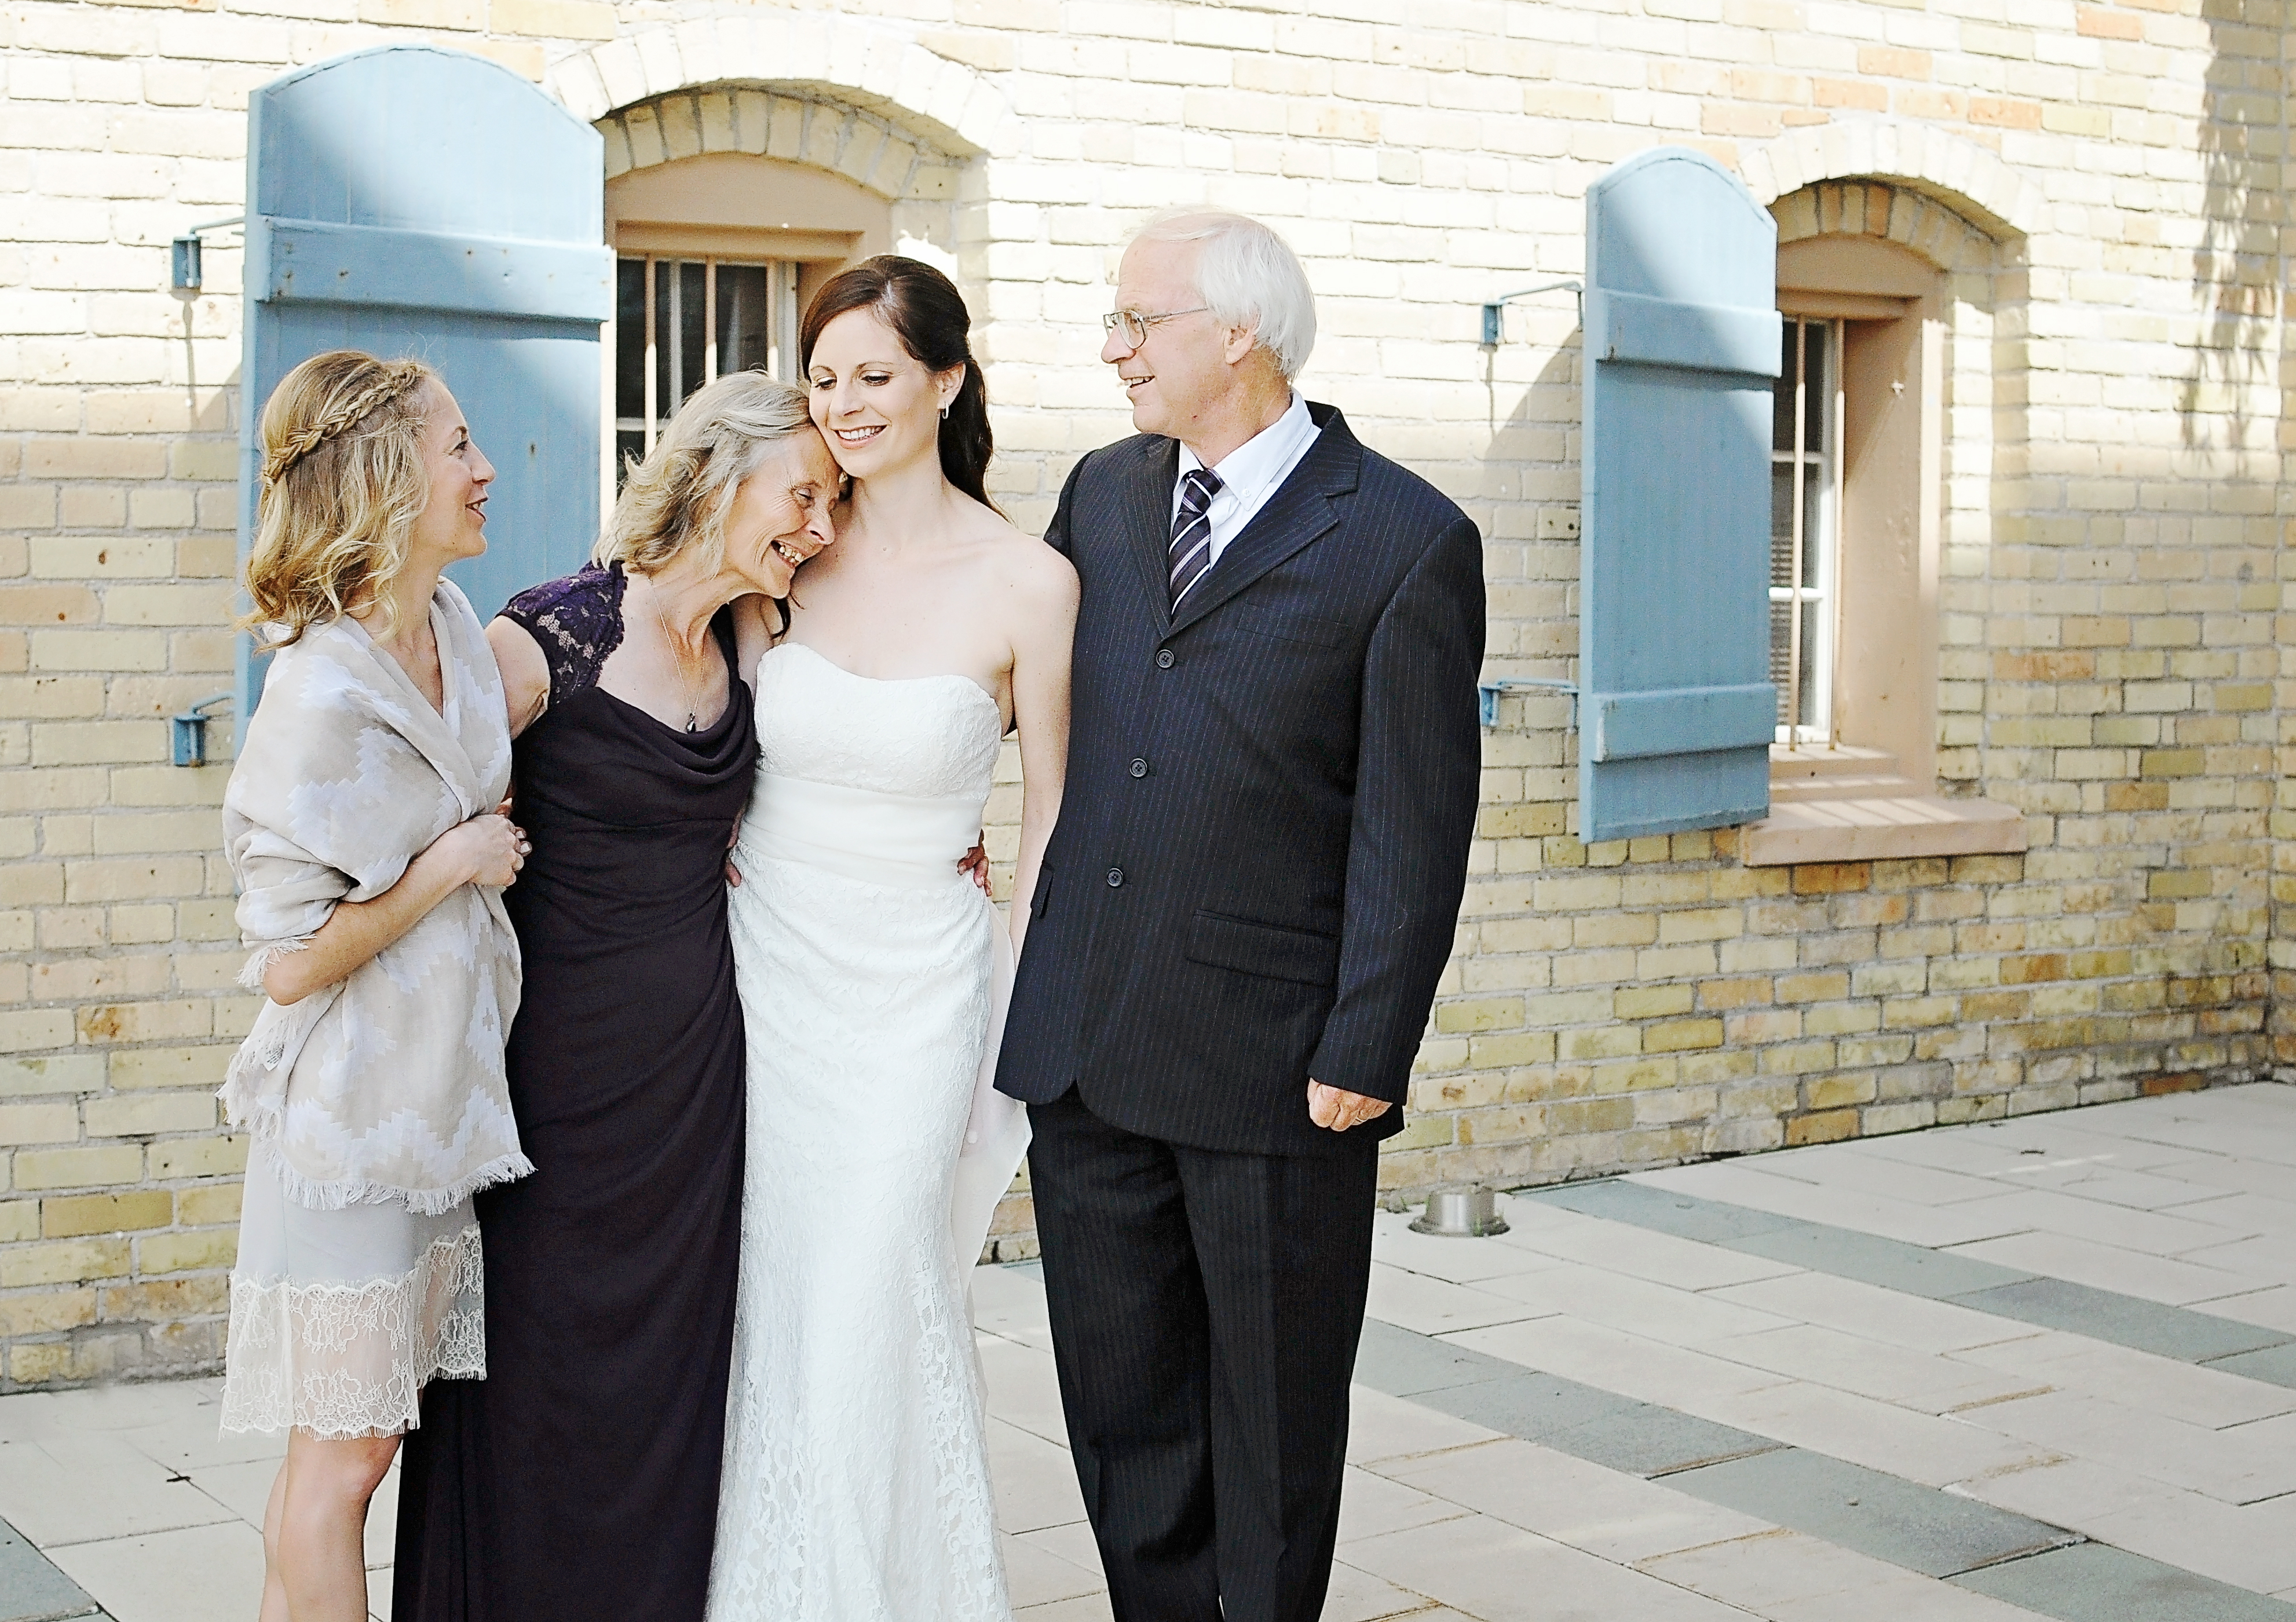 Sarah and her family with dress